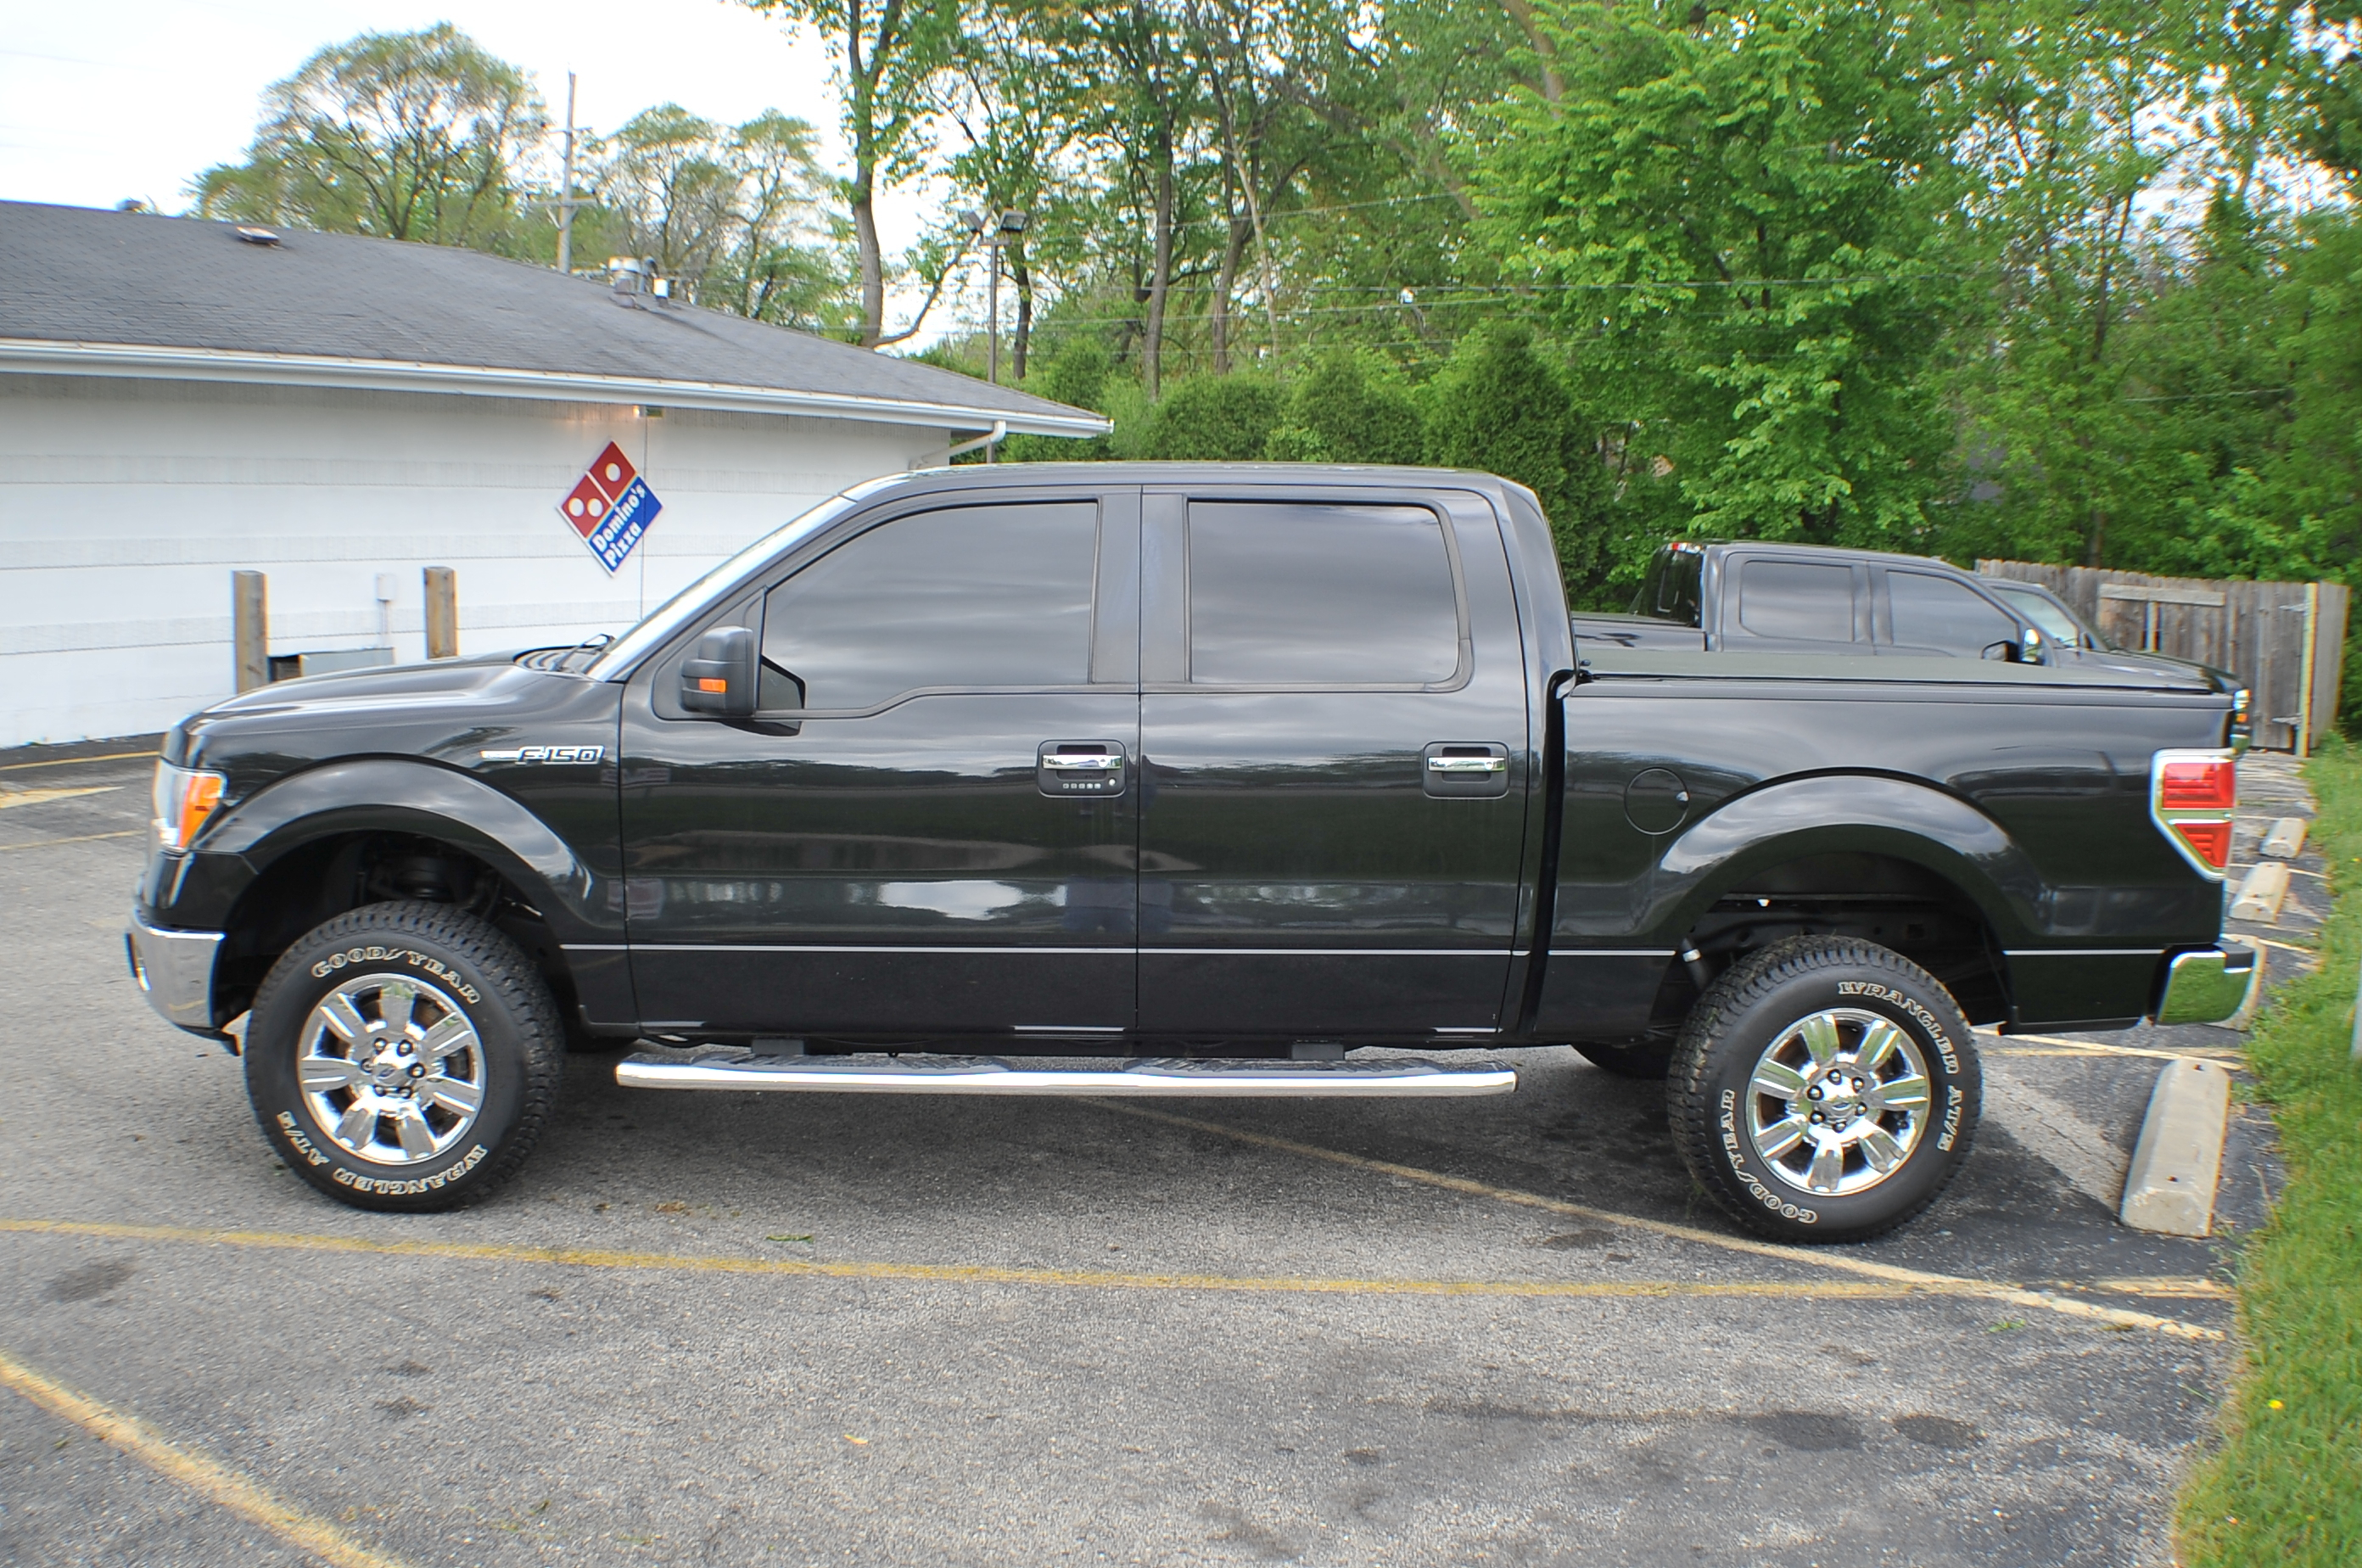 2010 Ford F150 Black 4x4 Super Crew Cab Pickup Truck Sale Libertyville